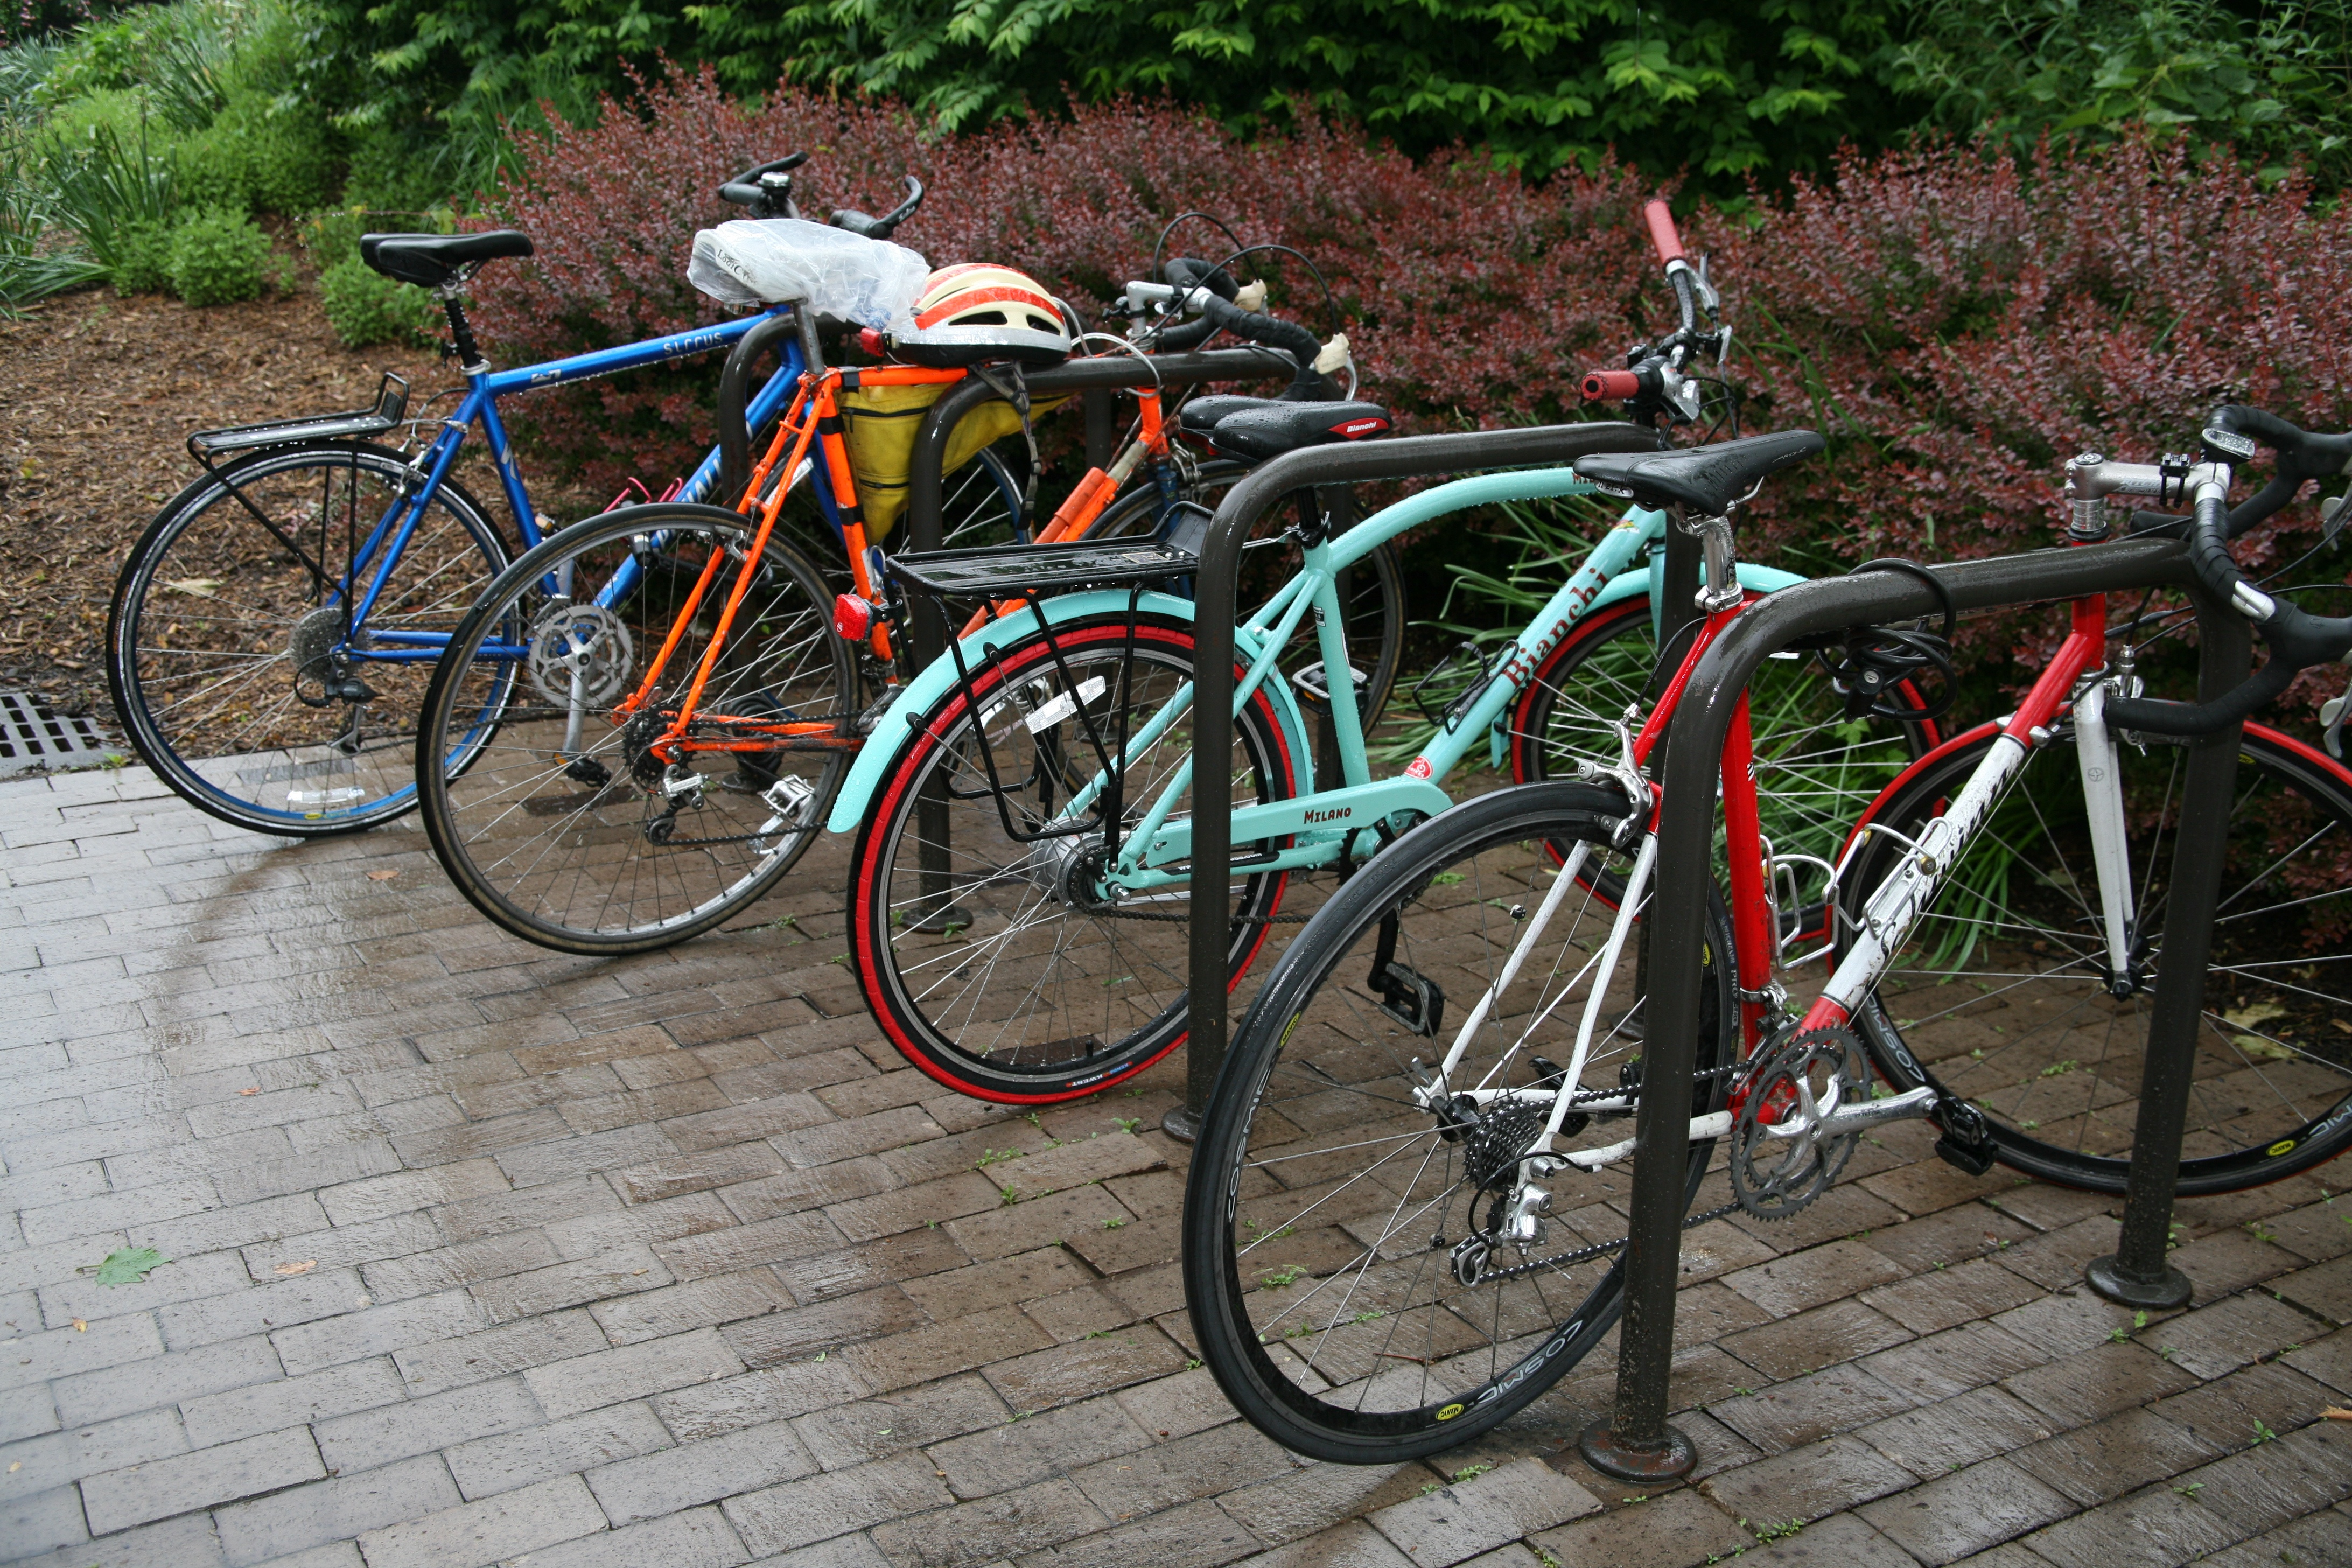 Bikes at bike rack